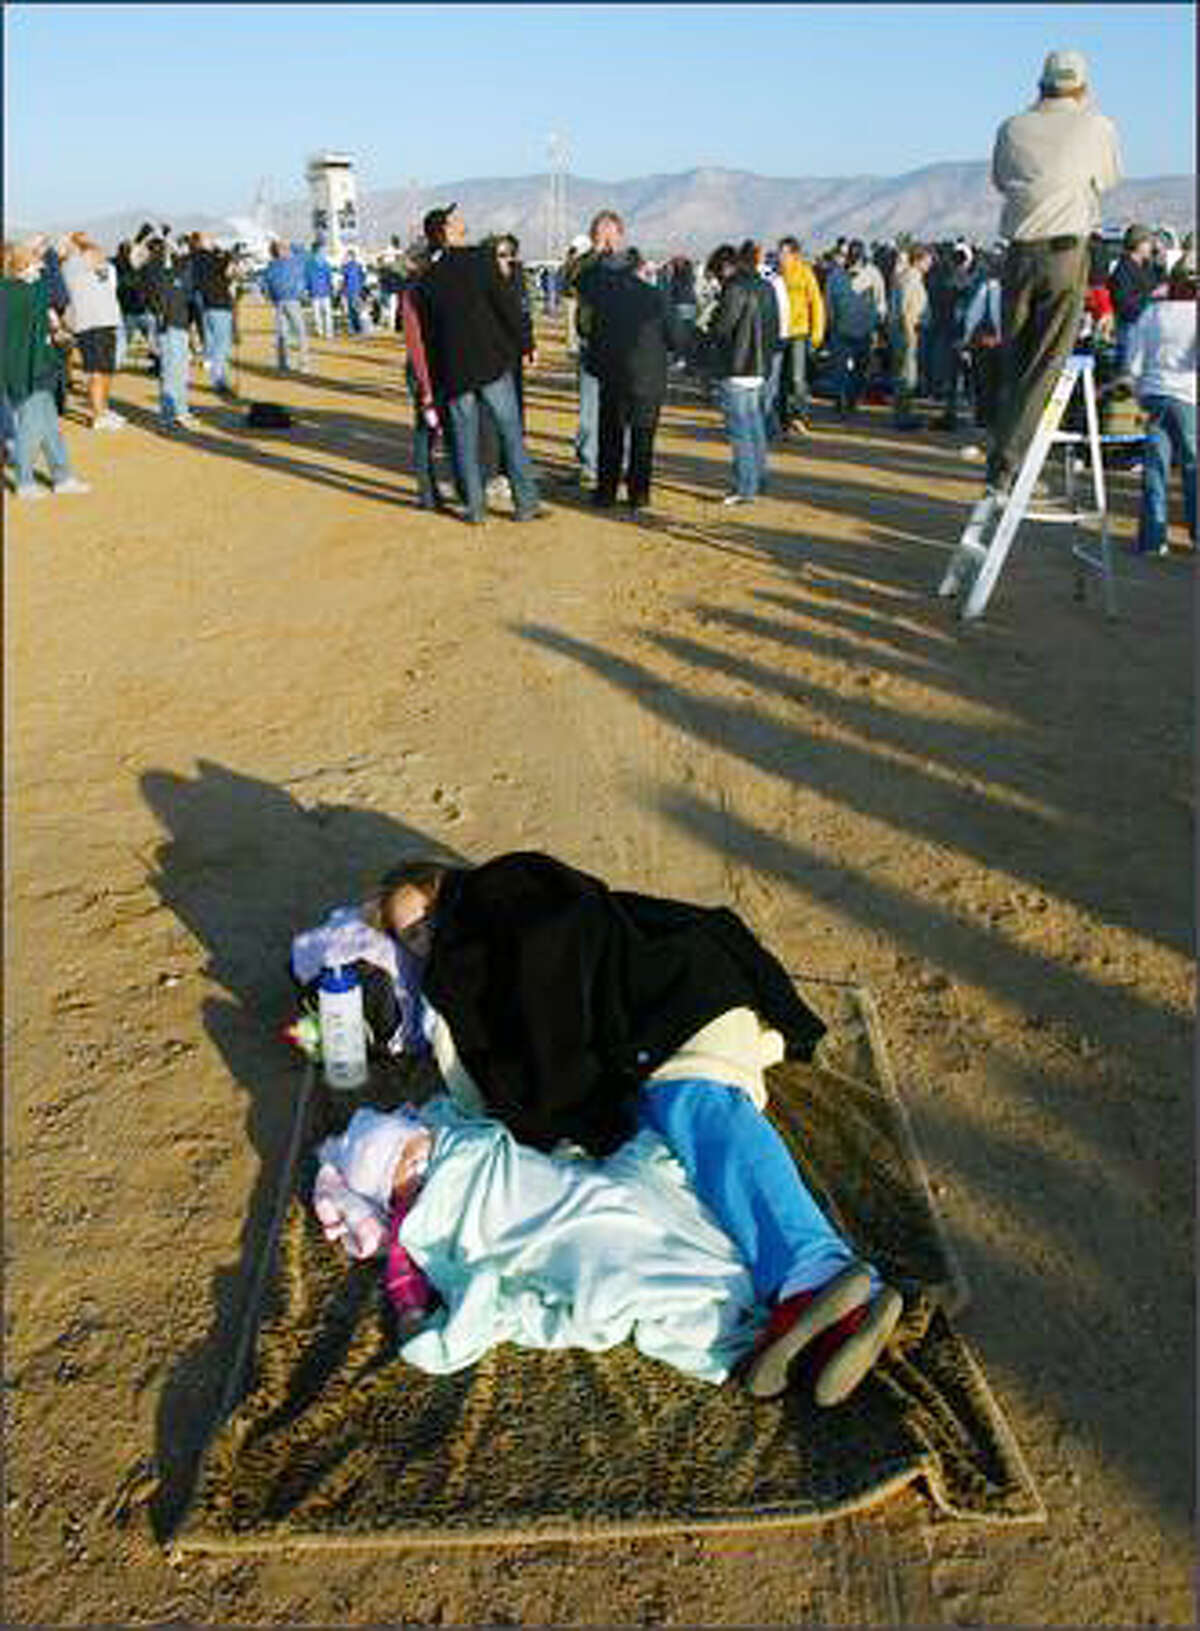 Ryannn Ortiz, 7 months old, and her aunt Stephanie Gomez, 21, decided that a little shut eye was more important than watching for SpaceShipOne to return. Some folks arrived at 3 a.m. for the 7:15 a.m. takeoff.